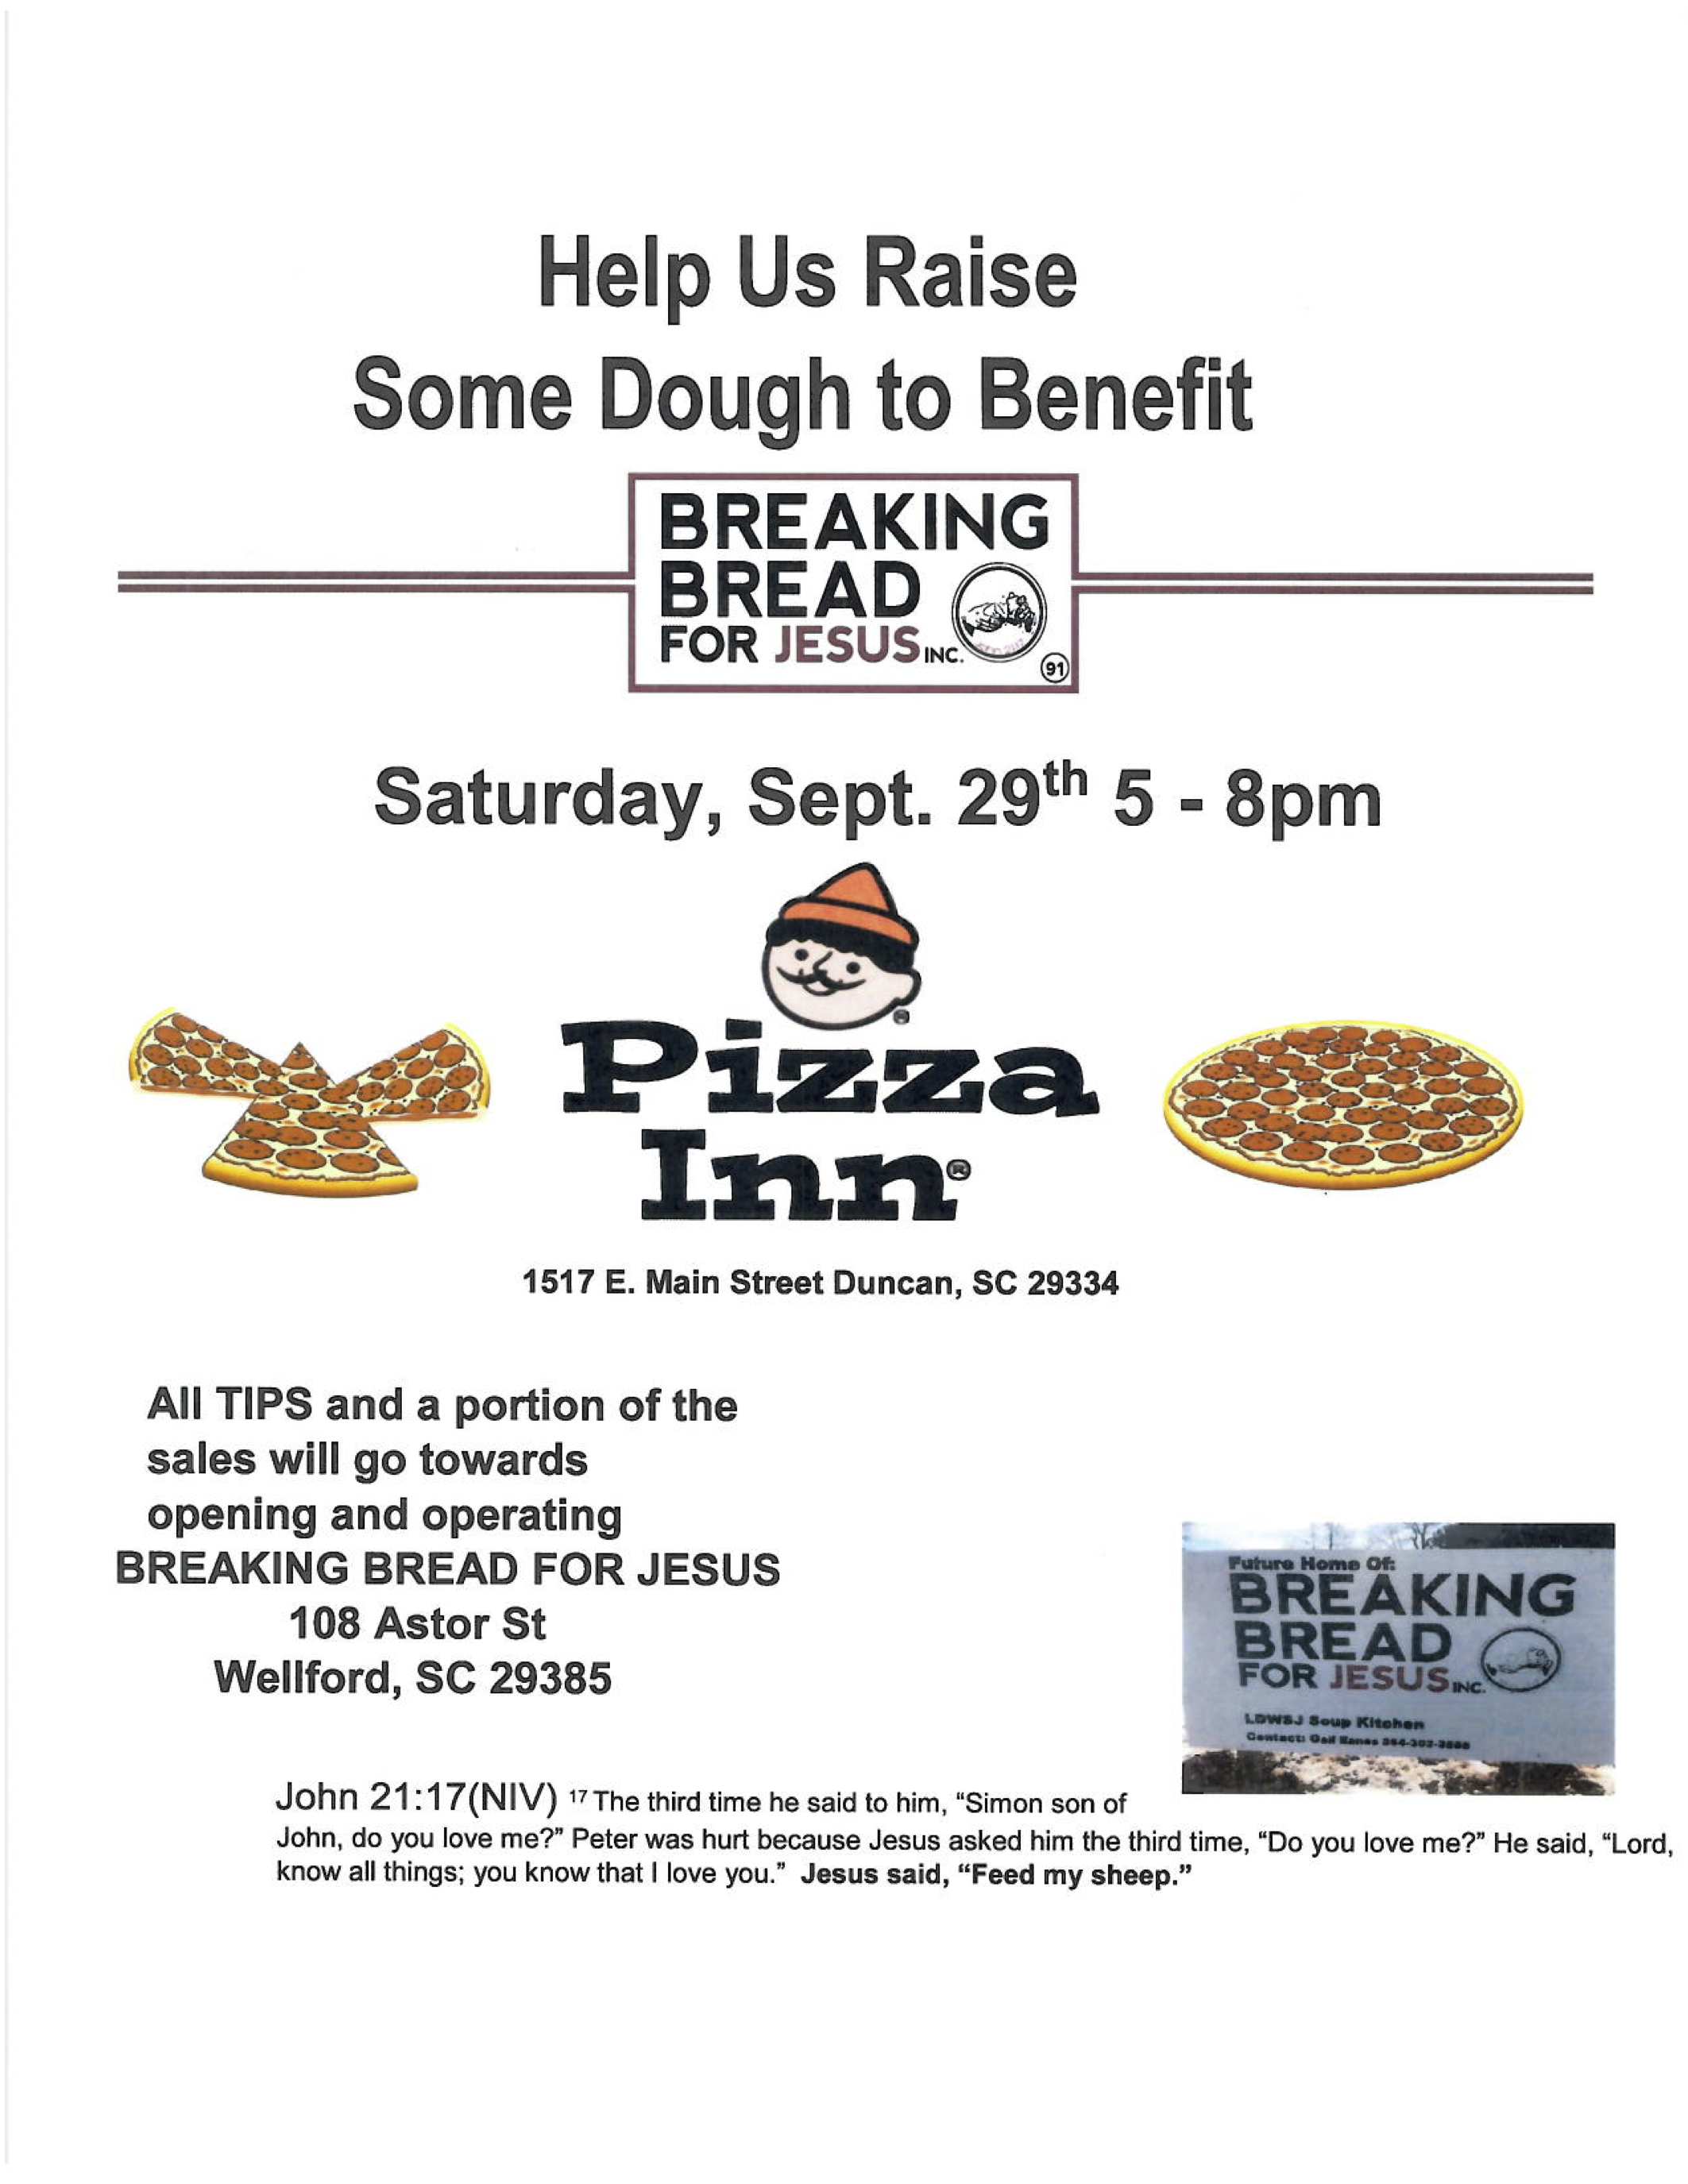 Help Us Raise Dough With Pizza Inn